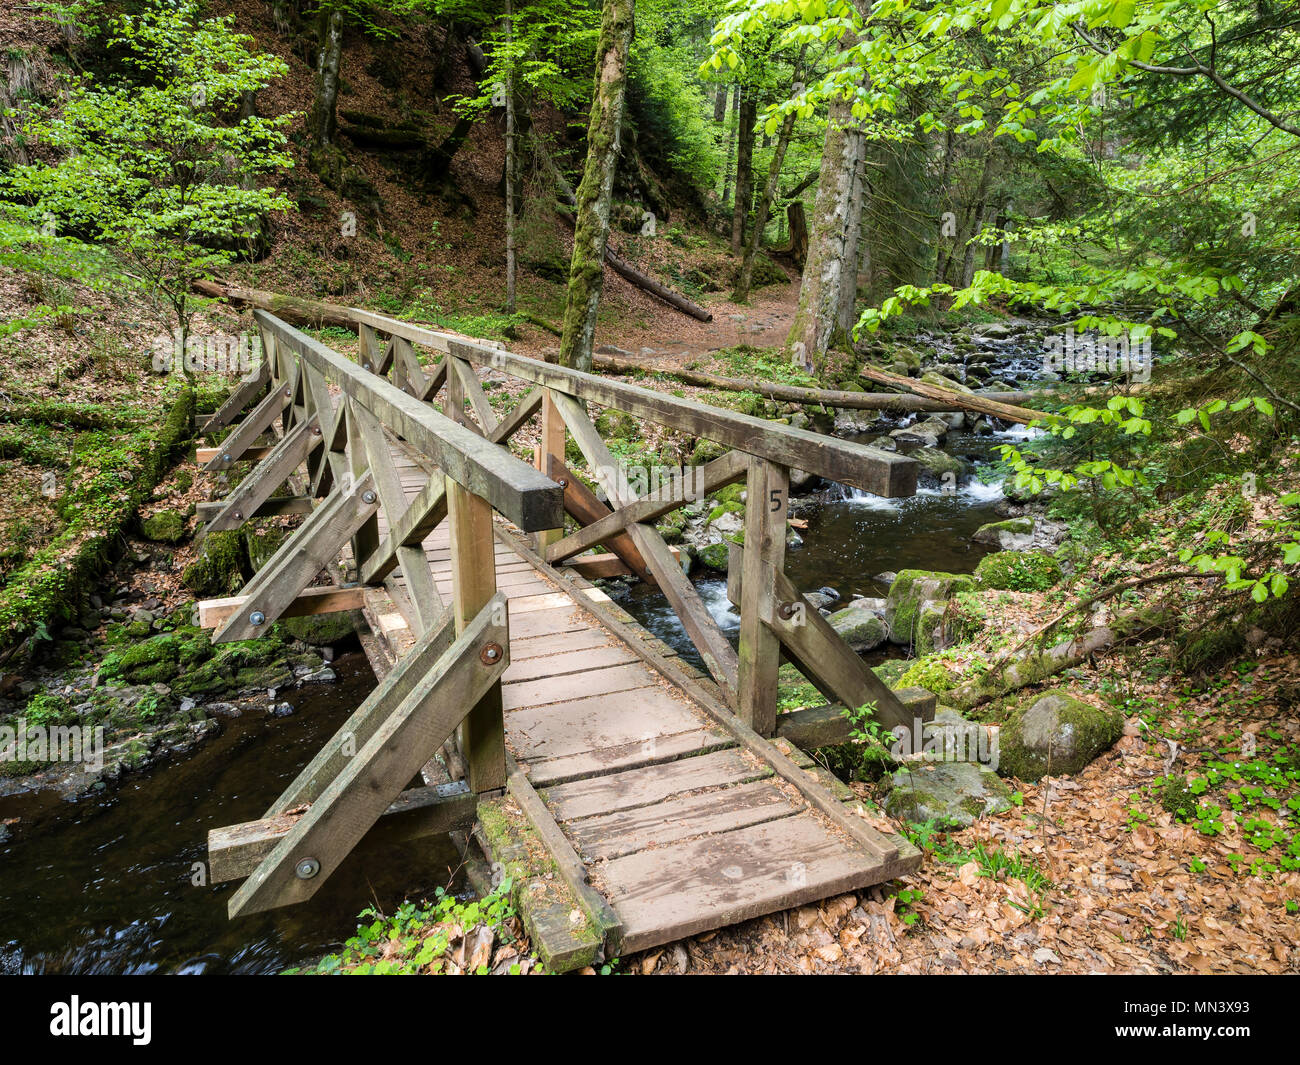 Hiking path with bridge in Ravenna gorge, near Hinterzarten, Black Forest, Baden-Württemberg, Germany Stock Photo